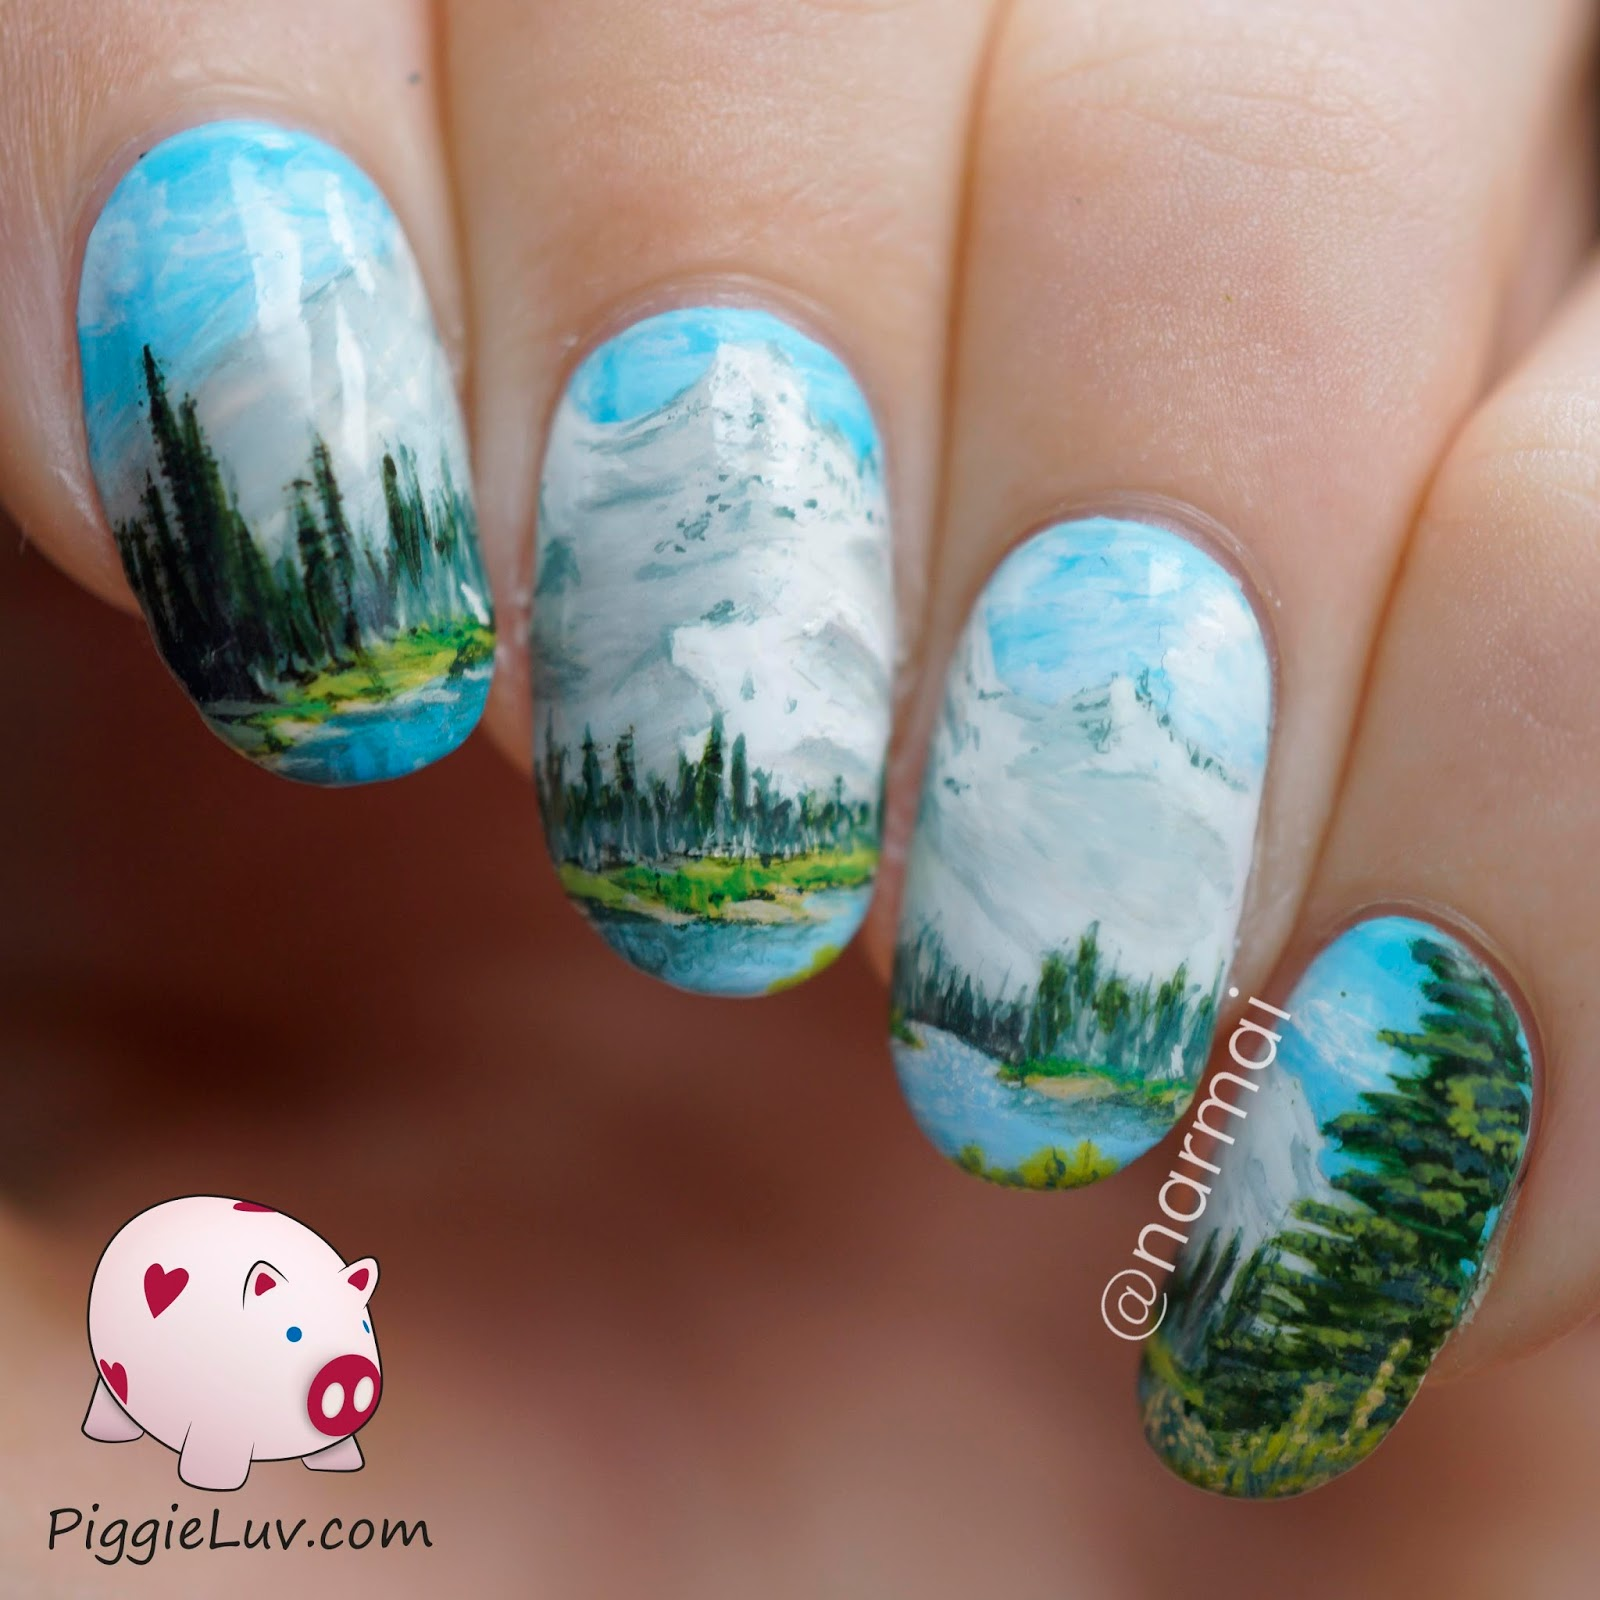 PiggieLuv: Nail art inspired by a Bob Ross painting